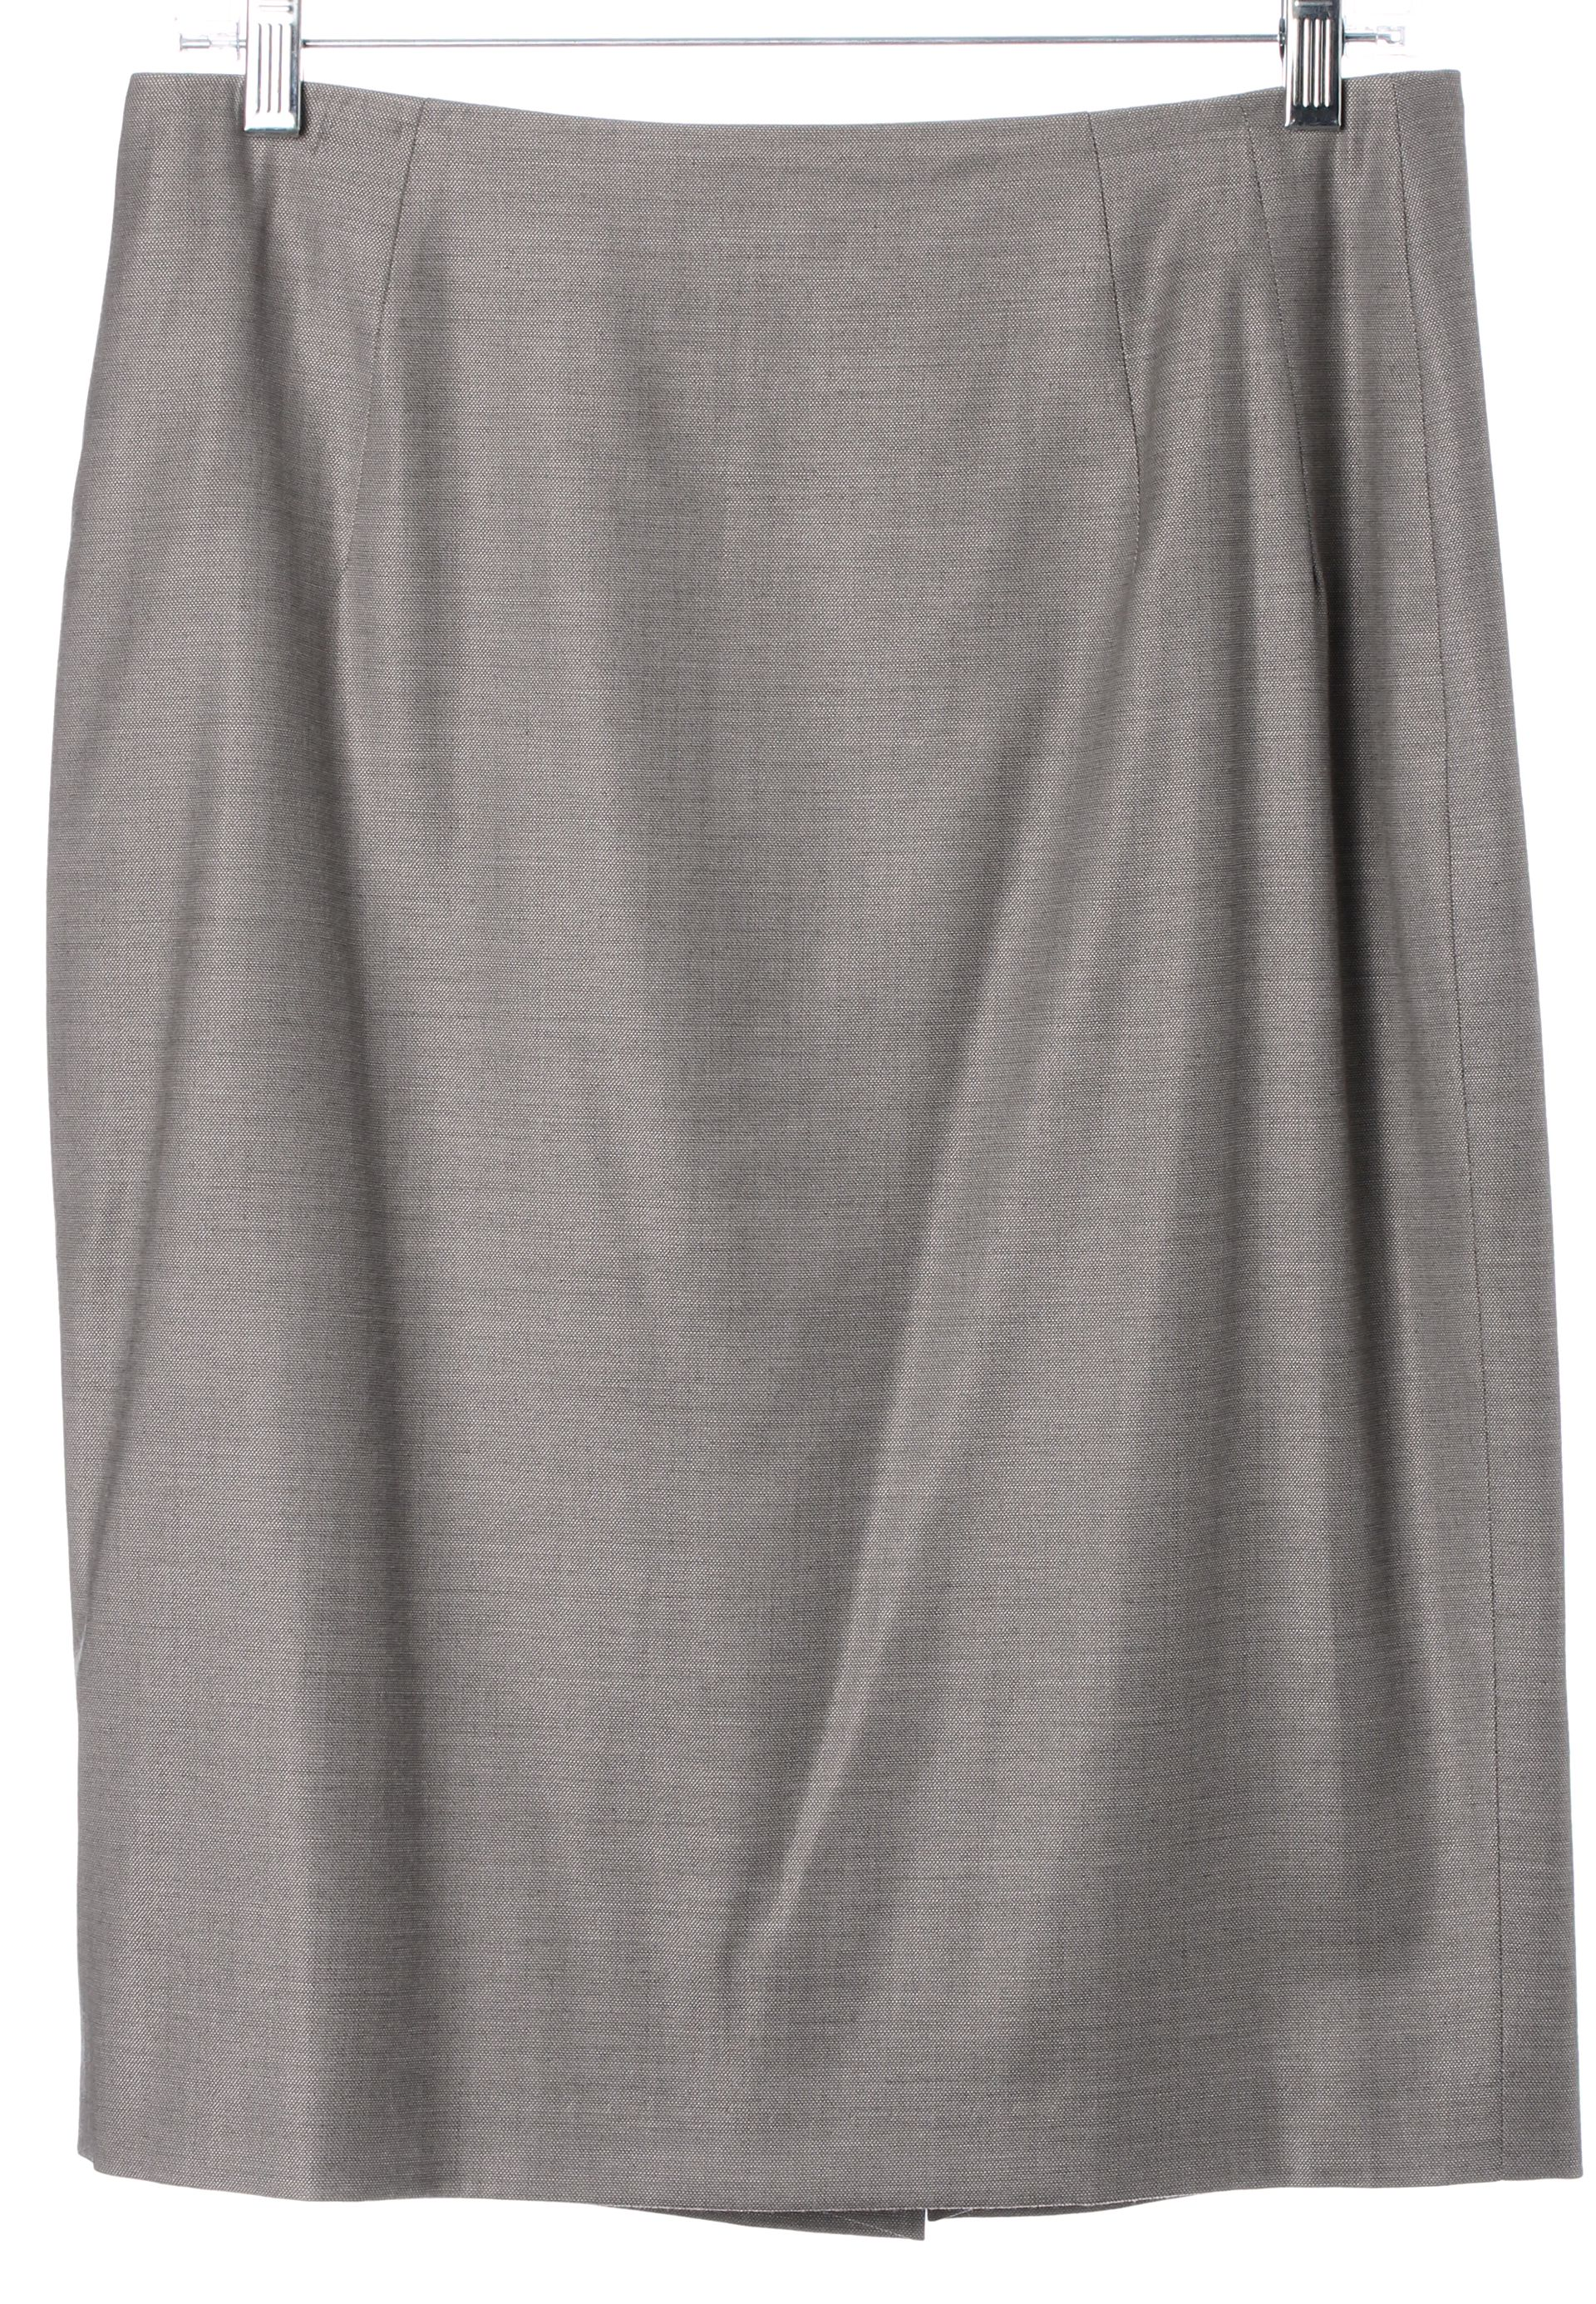 BOSS Hugo Boss Taupe Gray Above Knee Classic Suiting Pencil Skirt ...